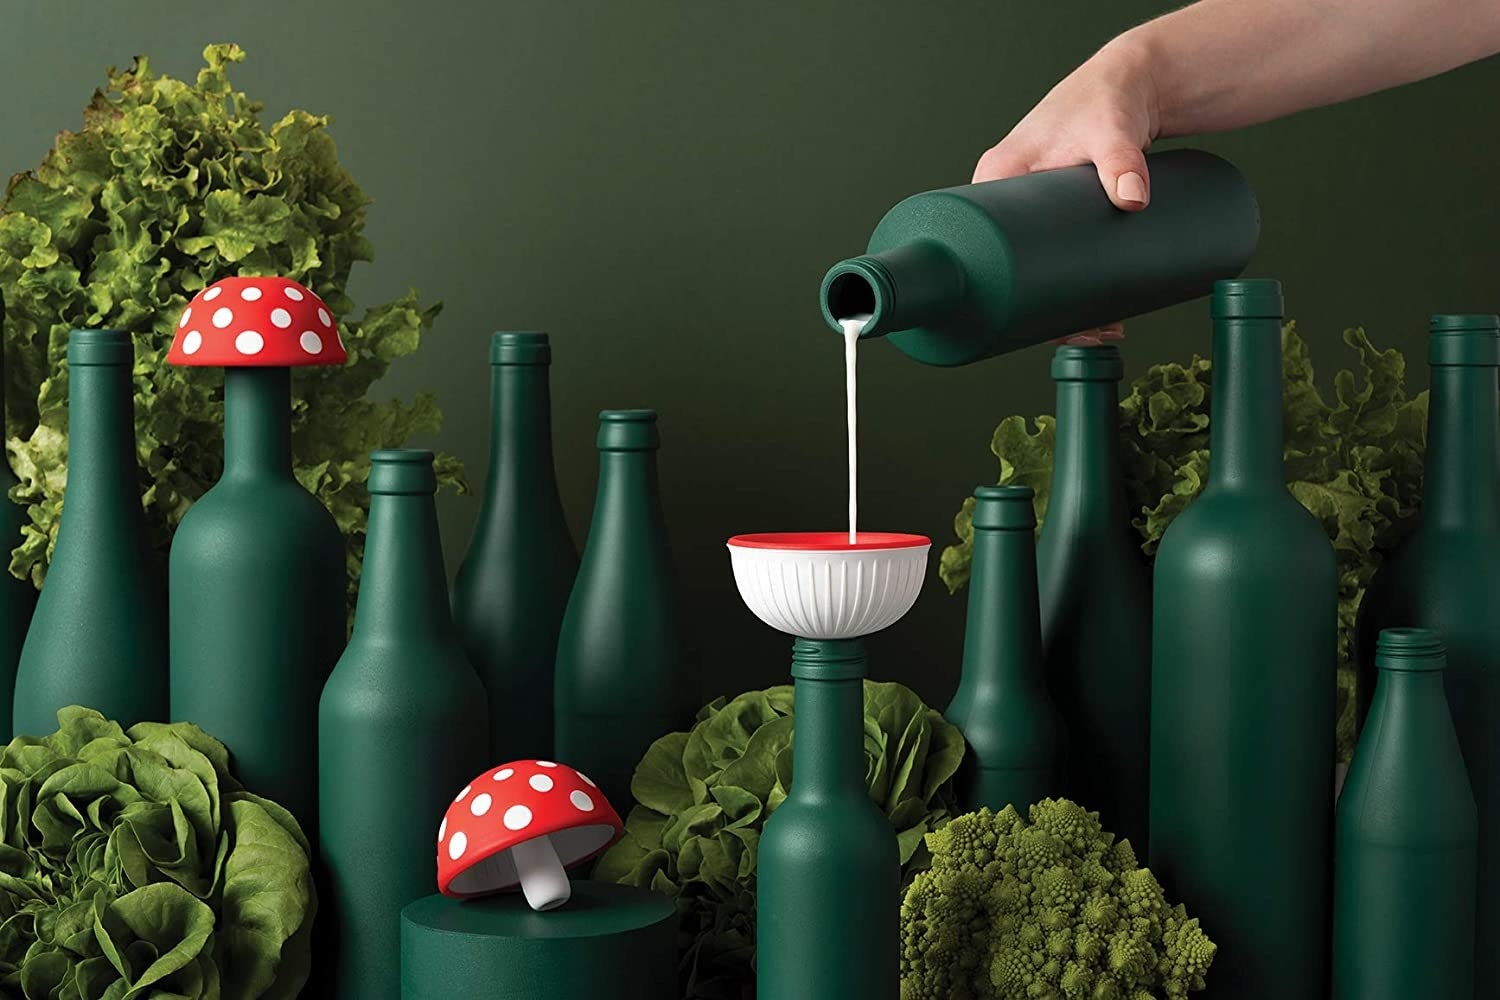 A silicone funnel in the shape of a mushroom